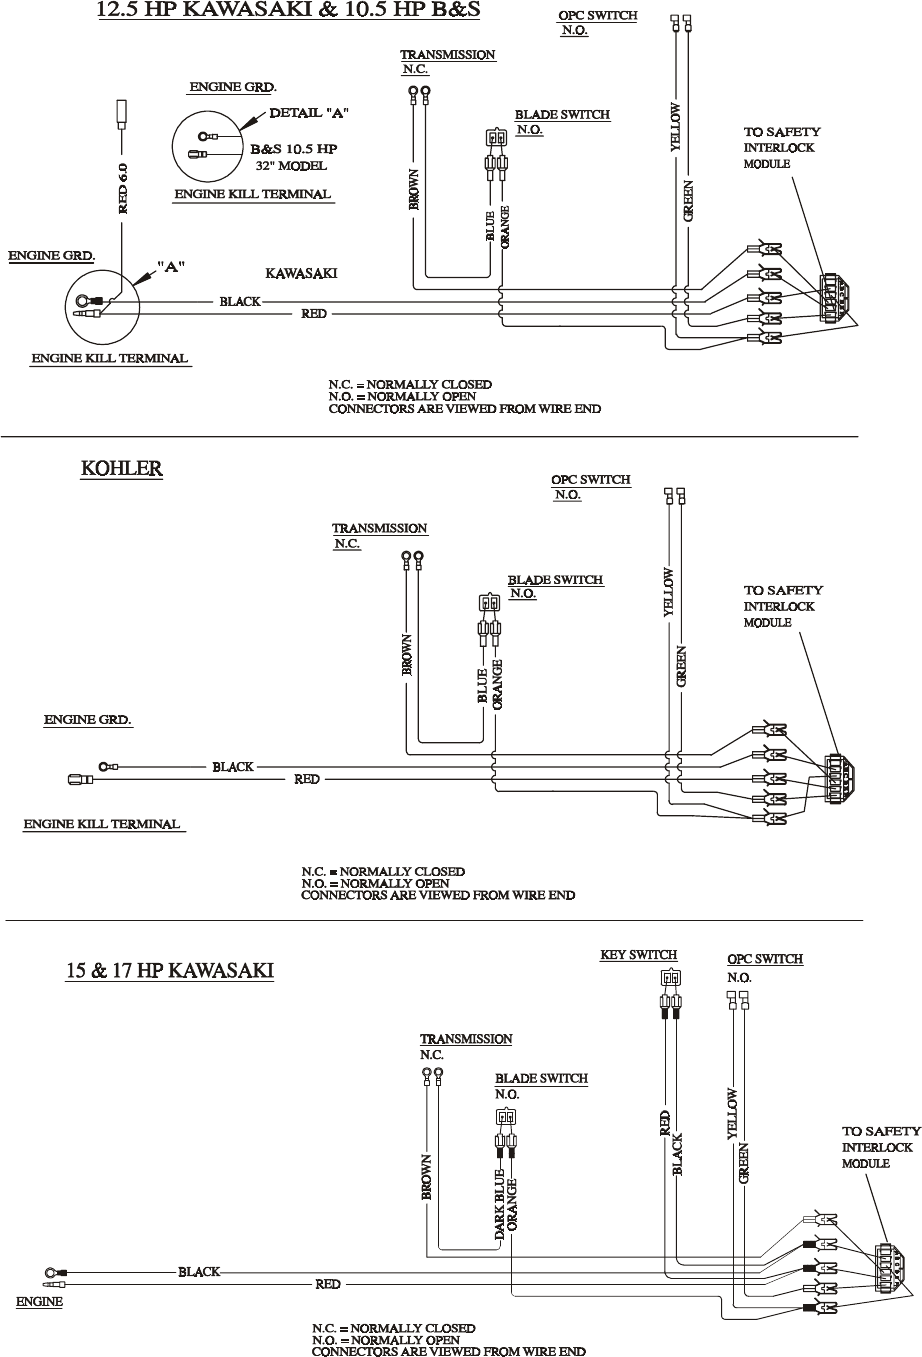 fa869892 6c99 4c24 afcd a612459af1d0 bg27 page 39 of exmark lawn mower metro user guide manualsonline com exmark wiring diagram at eliteediting.co